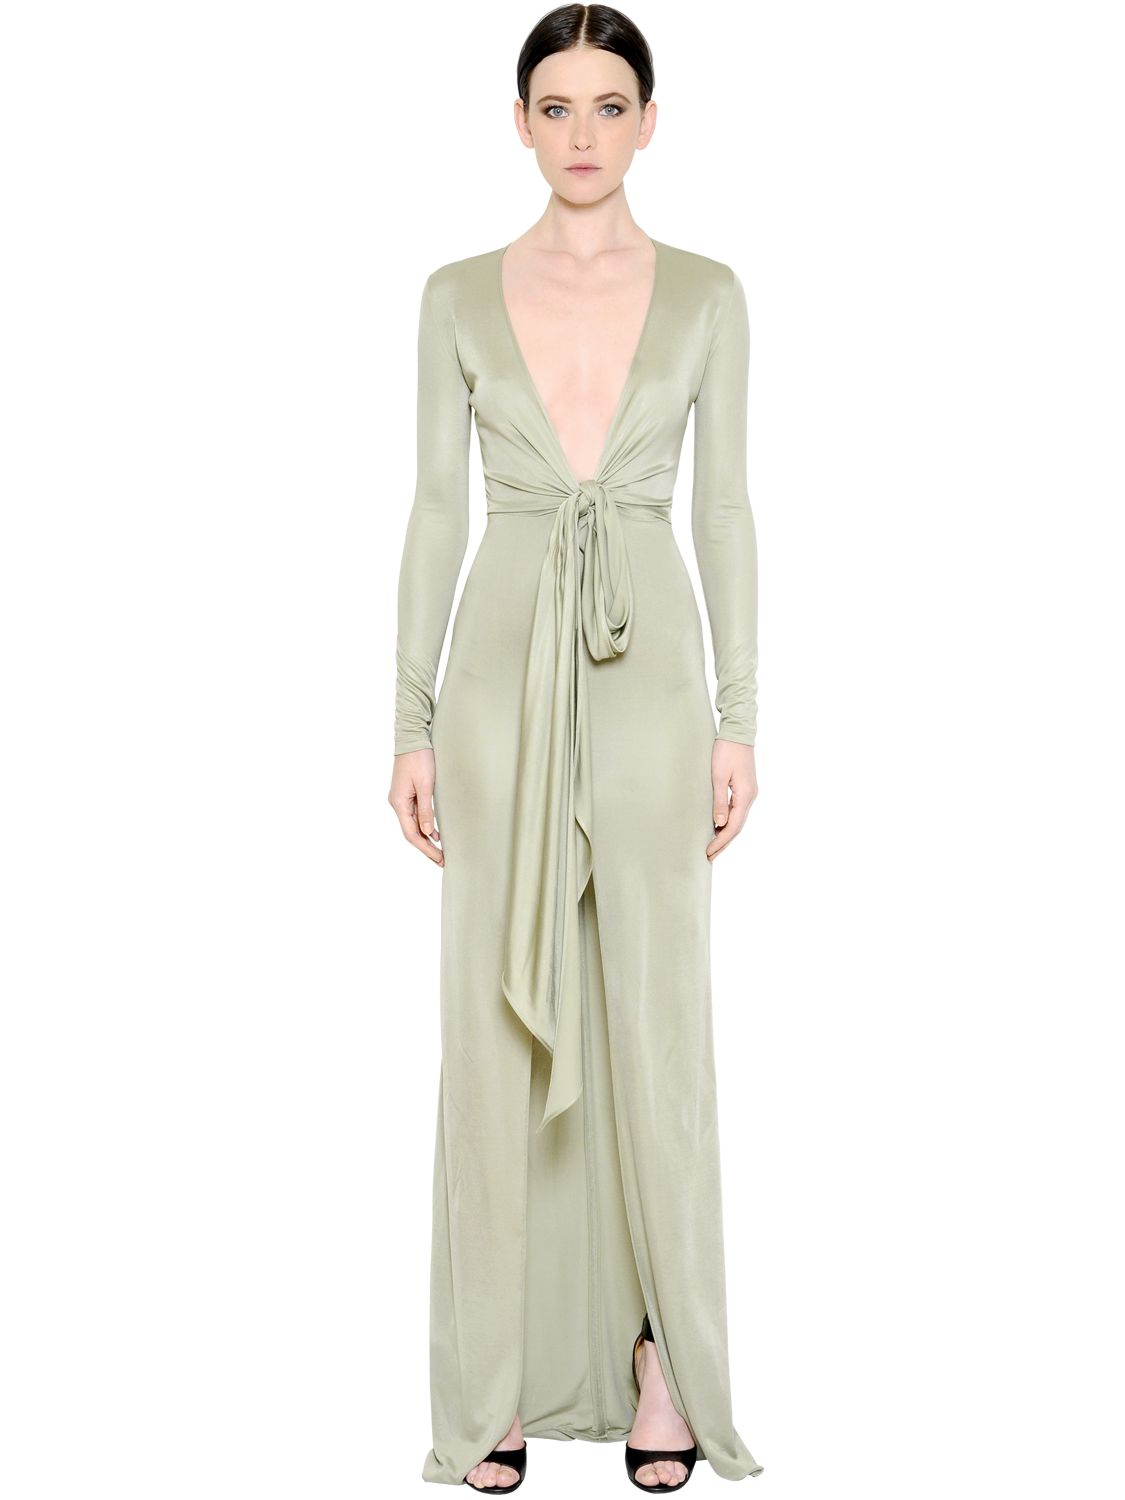 b9103ecb41b87 Lyst - Givenchy Fluid Viscose Jersey Dress With Knot in Green